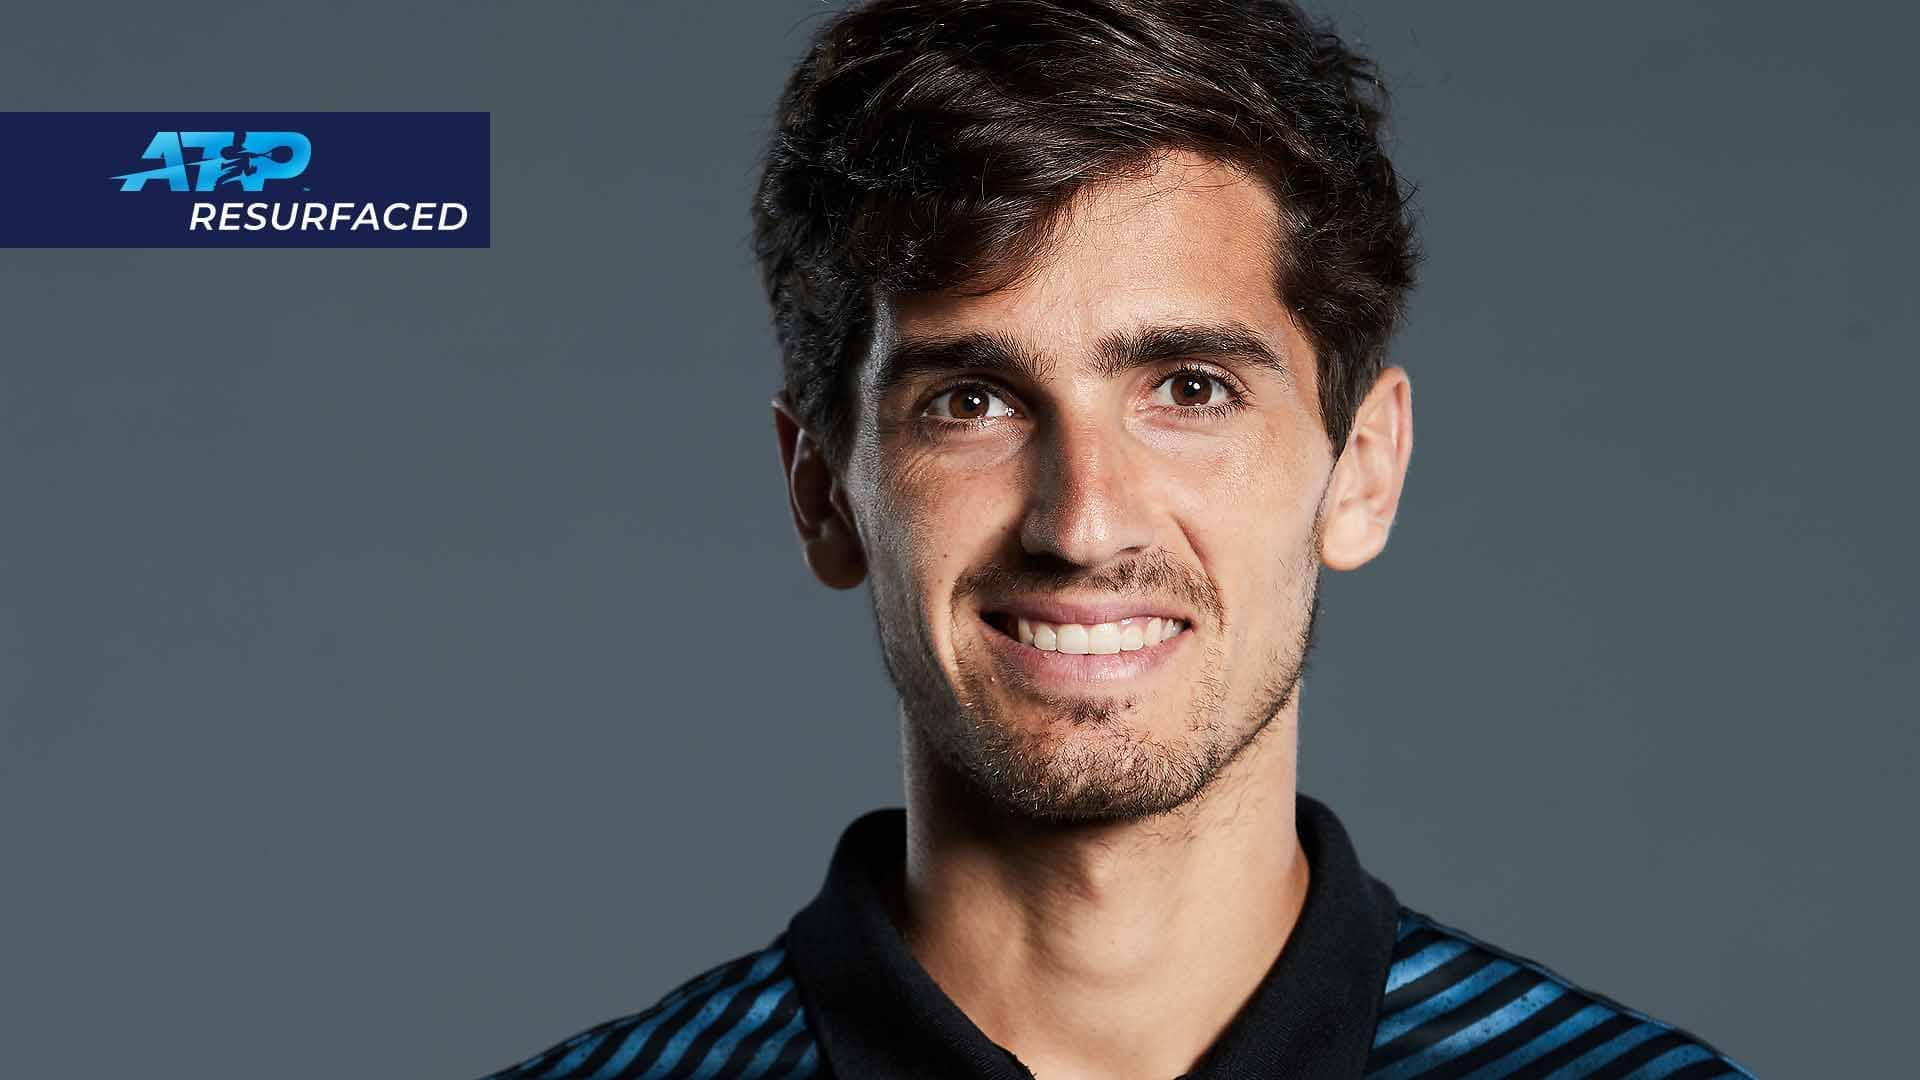 Pierre-Hugues Herbert, who completed a doubles Career Grand Slam aged 27 with Nicolas Mahut, is now focused on improving his singles game.